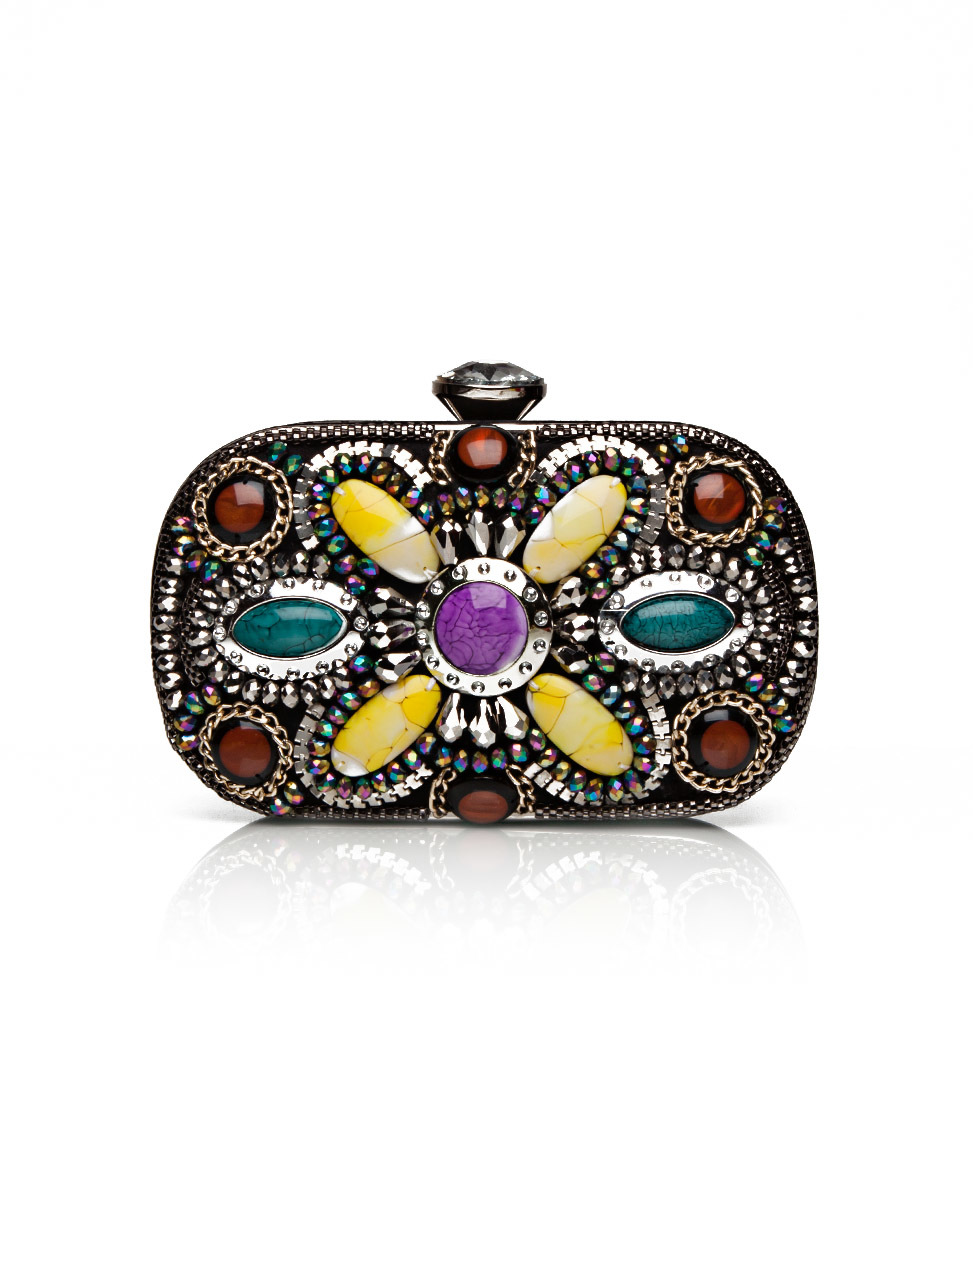 Paolina Evening Bag - predominant colour: burgundy; secondary colour: black; occasions: evening, occasion; type of pattern: heavy; style: clutch; length: hand carry; size: small; material: fabric; pattern: plain; finish: metallic; embellishment: jewels/stone; season: s/s 2015; multicoloured: multicoloured; wardrobe: event